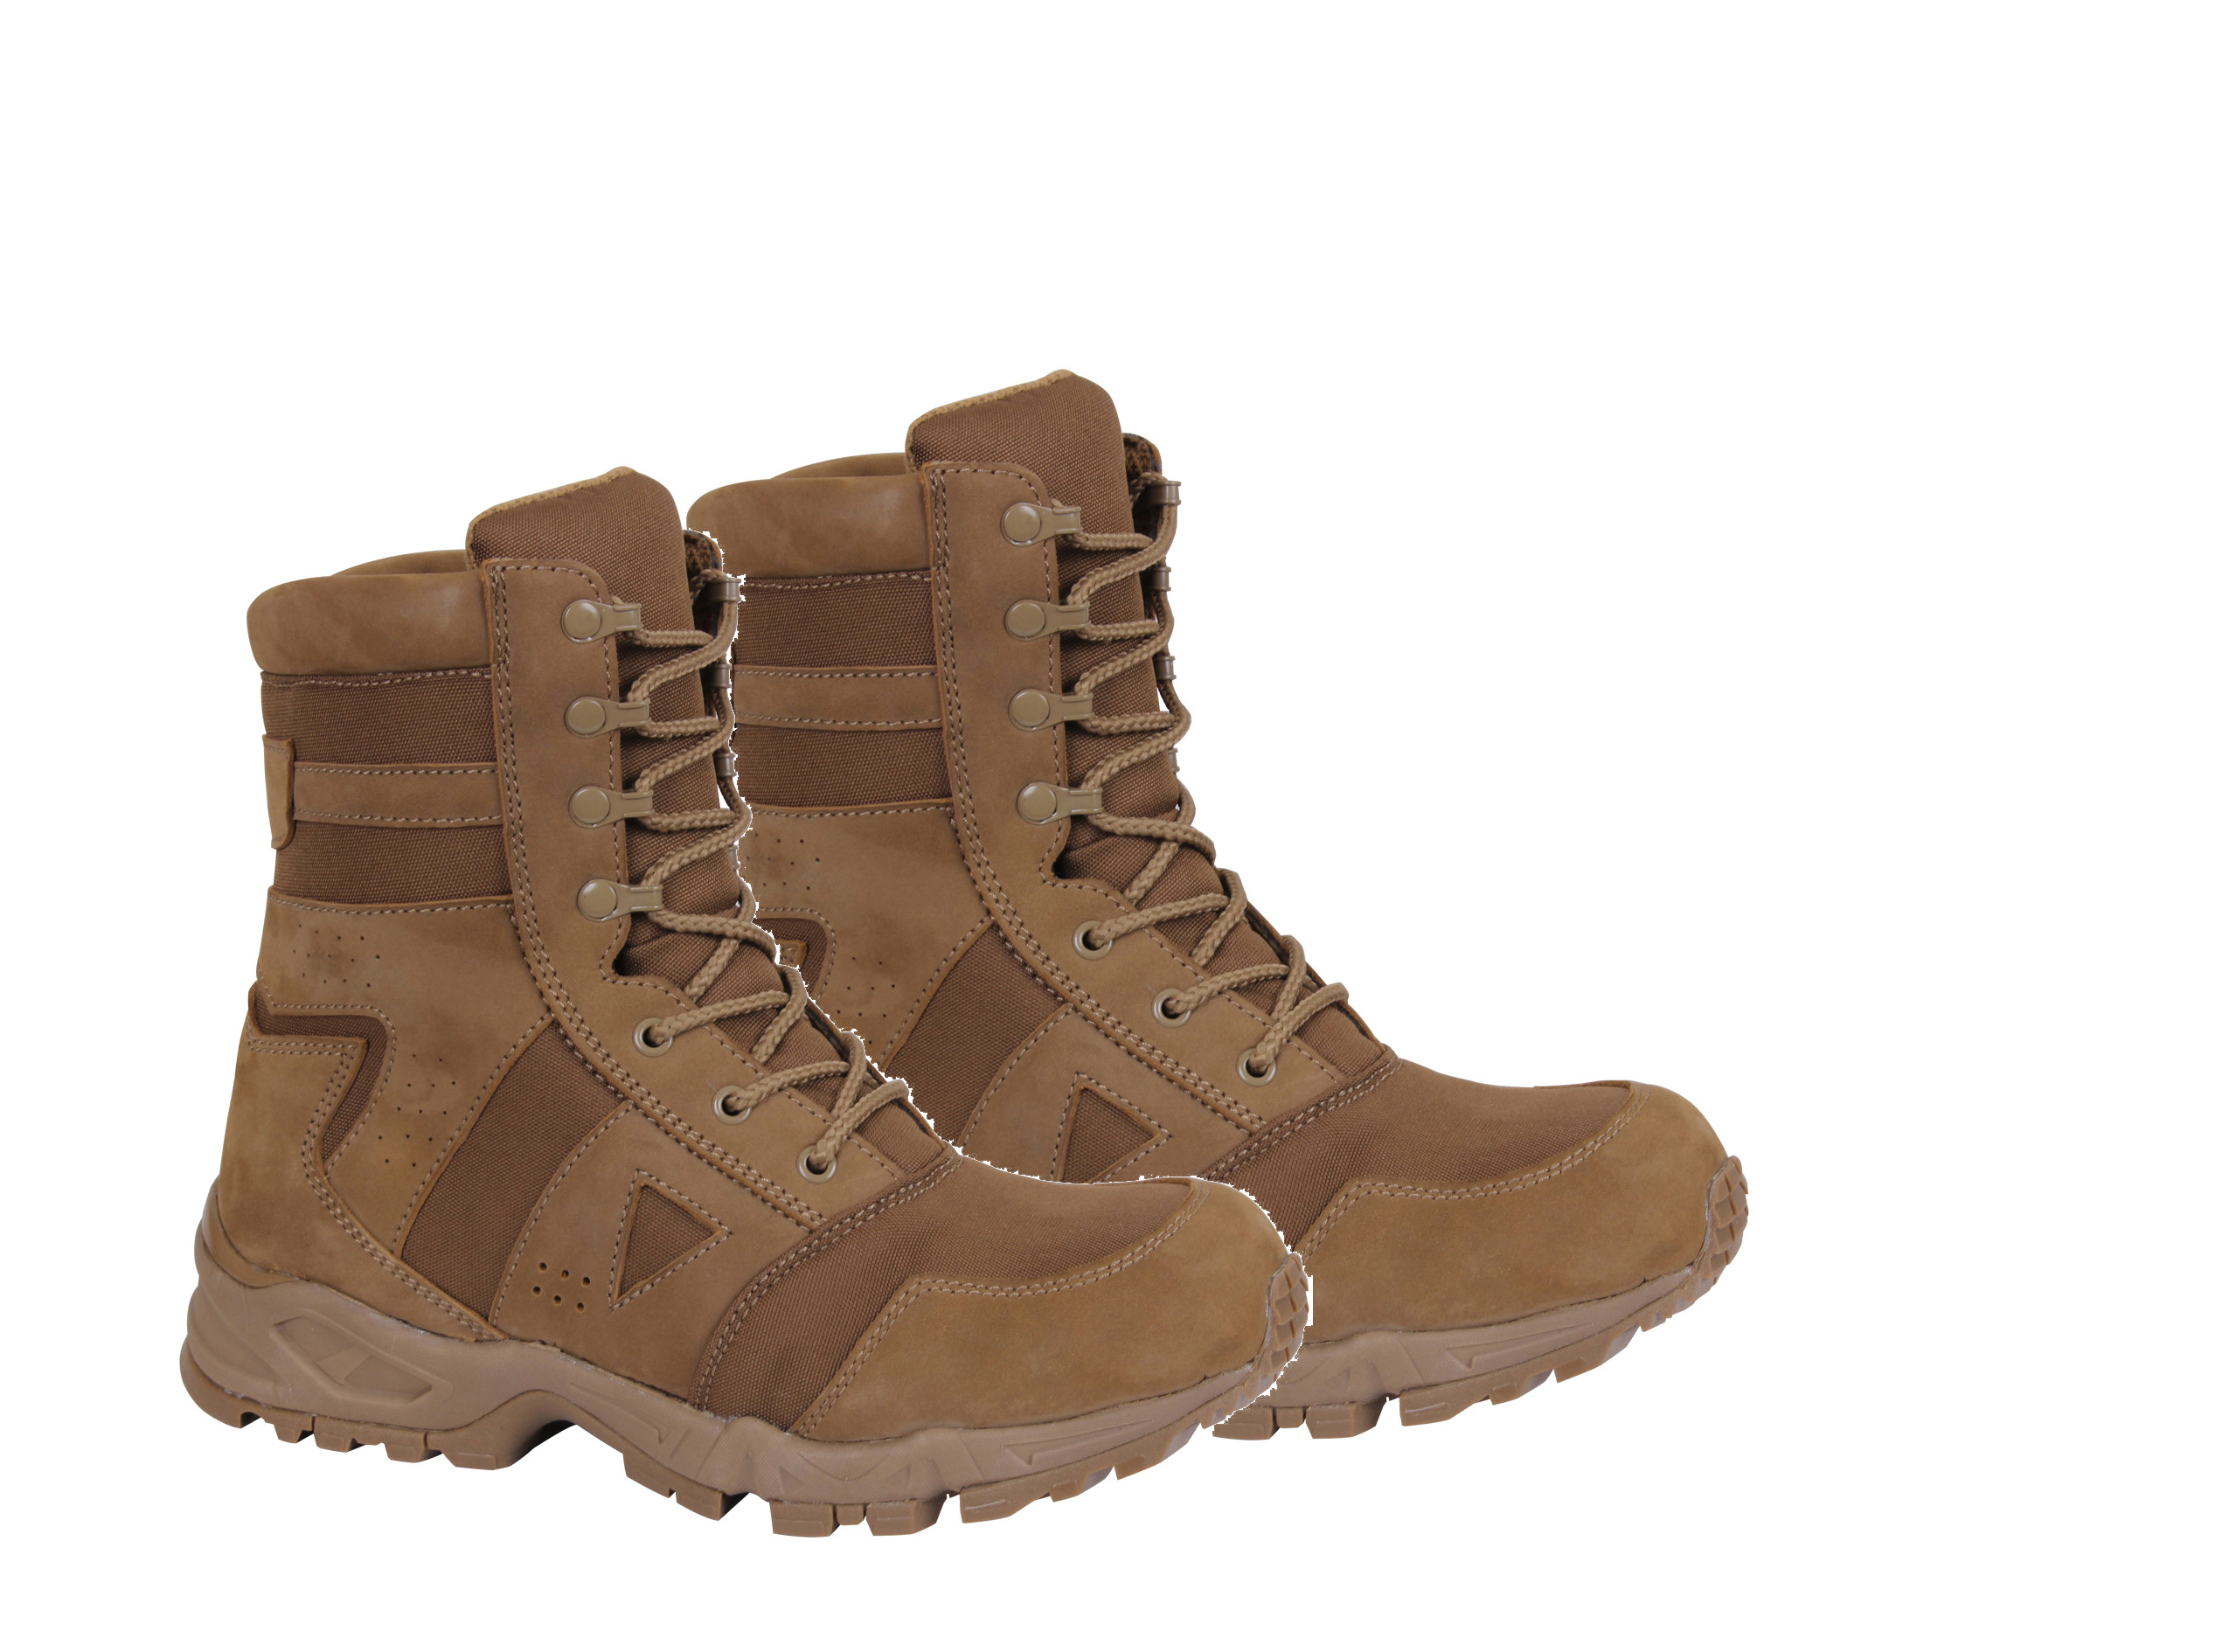 Coyote Brown AR 670-1 Compliant Forced Entry Tactical Boots 1bdd46376a5